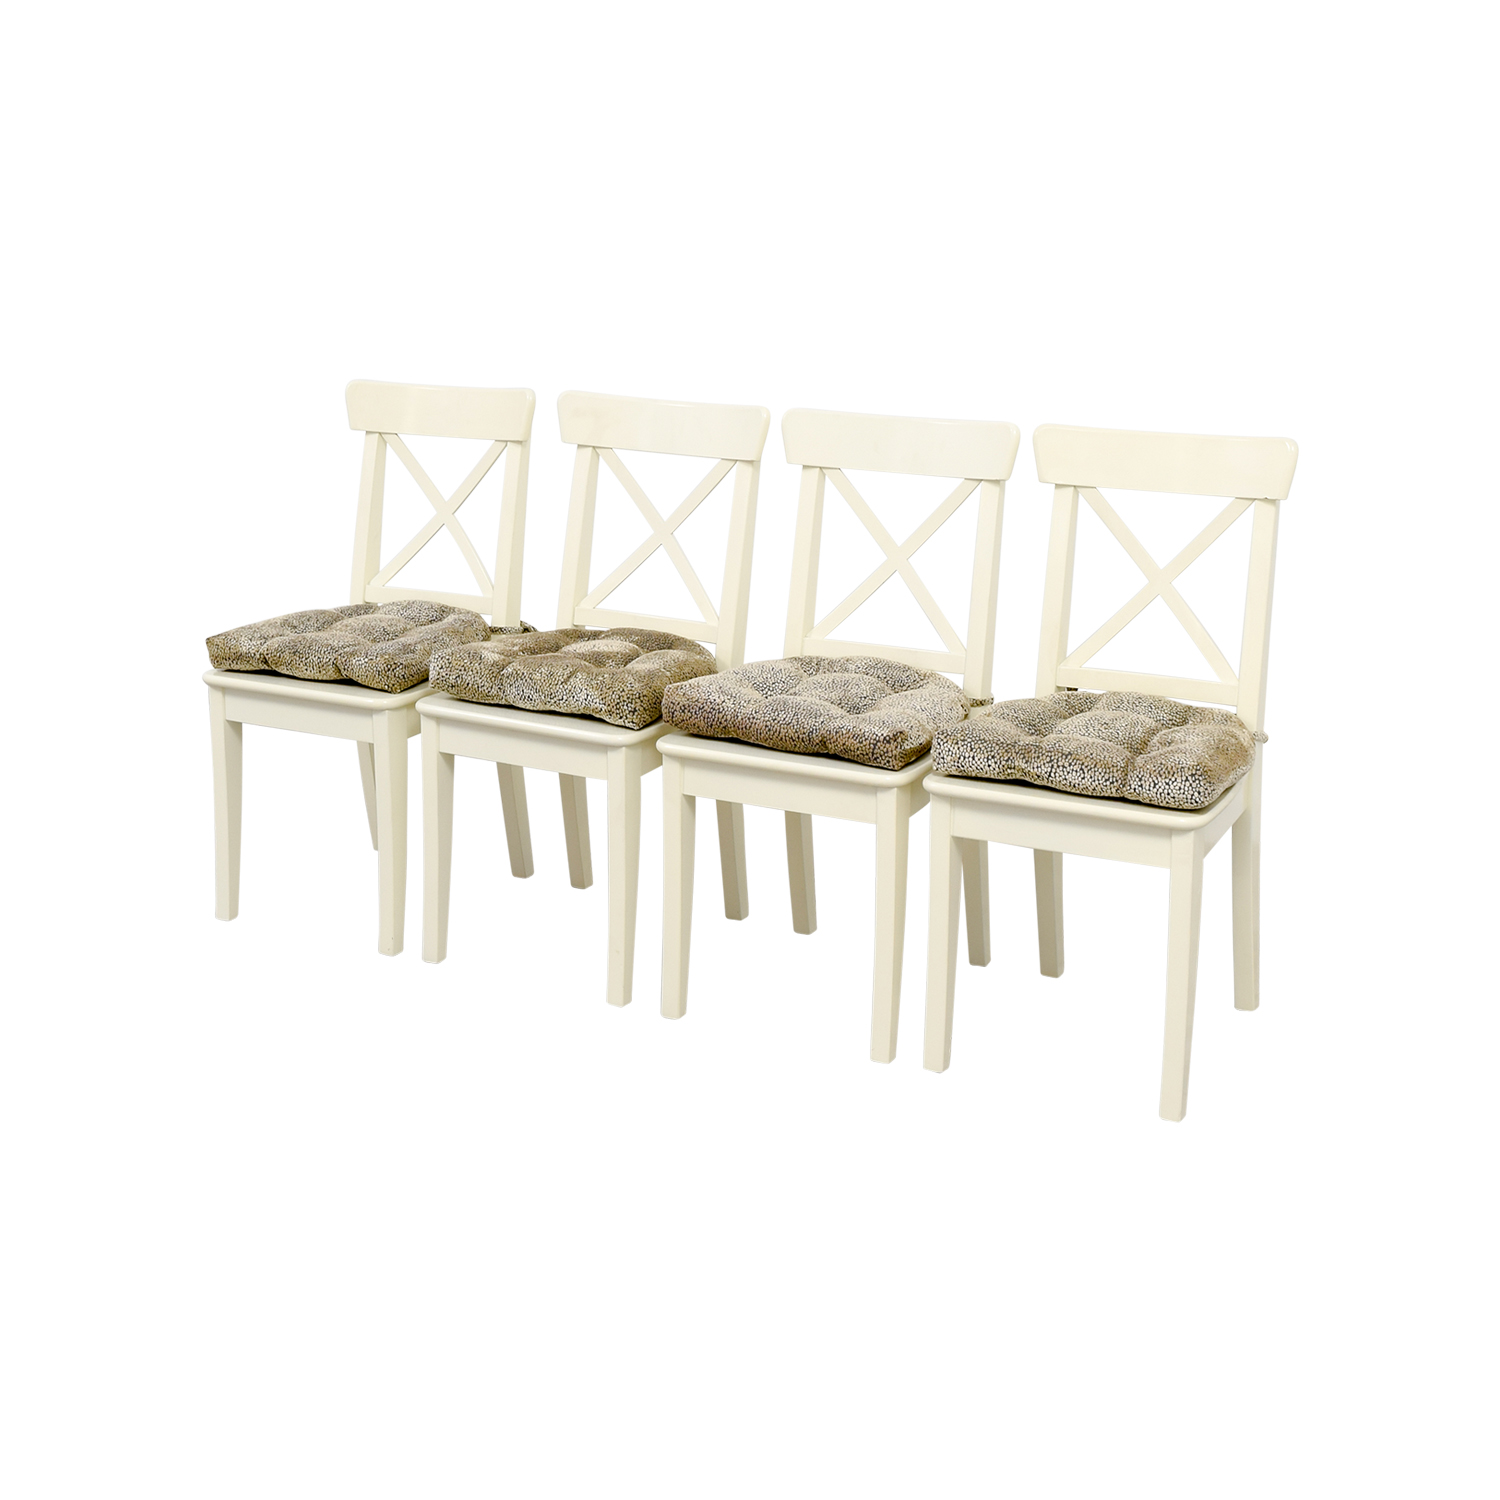 ikea ingolf chair outdoor replacement cushions 58 off with chairs